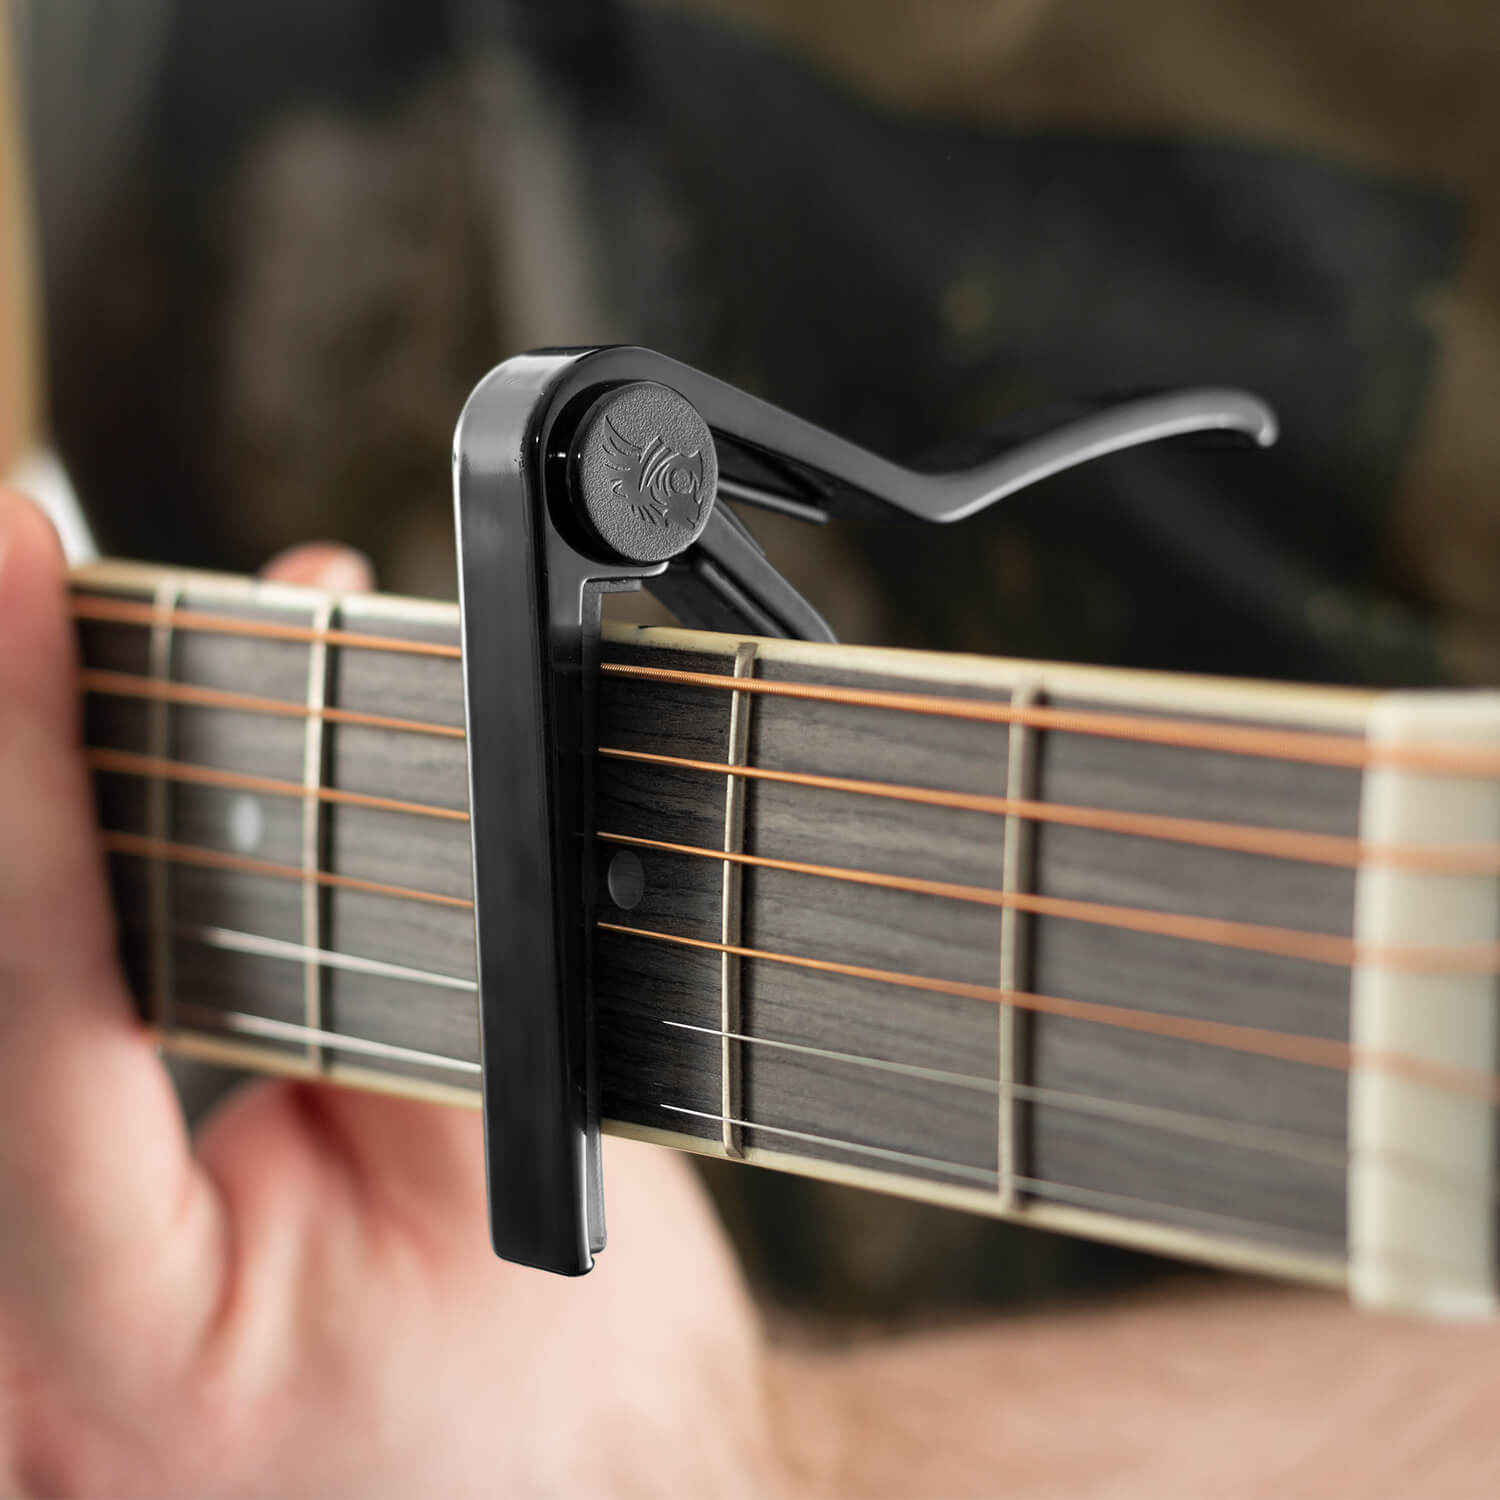 Tiger Black Universal Trigger Guitar Capo for Acoustic, Classic, Electric Guitar 2